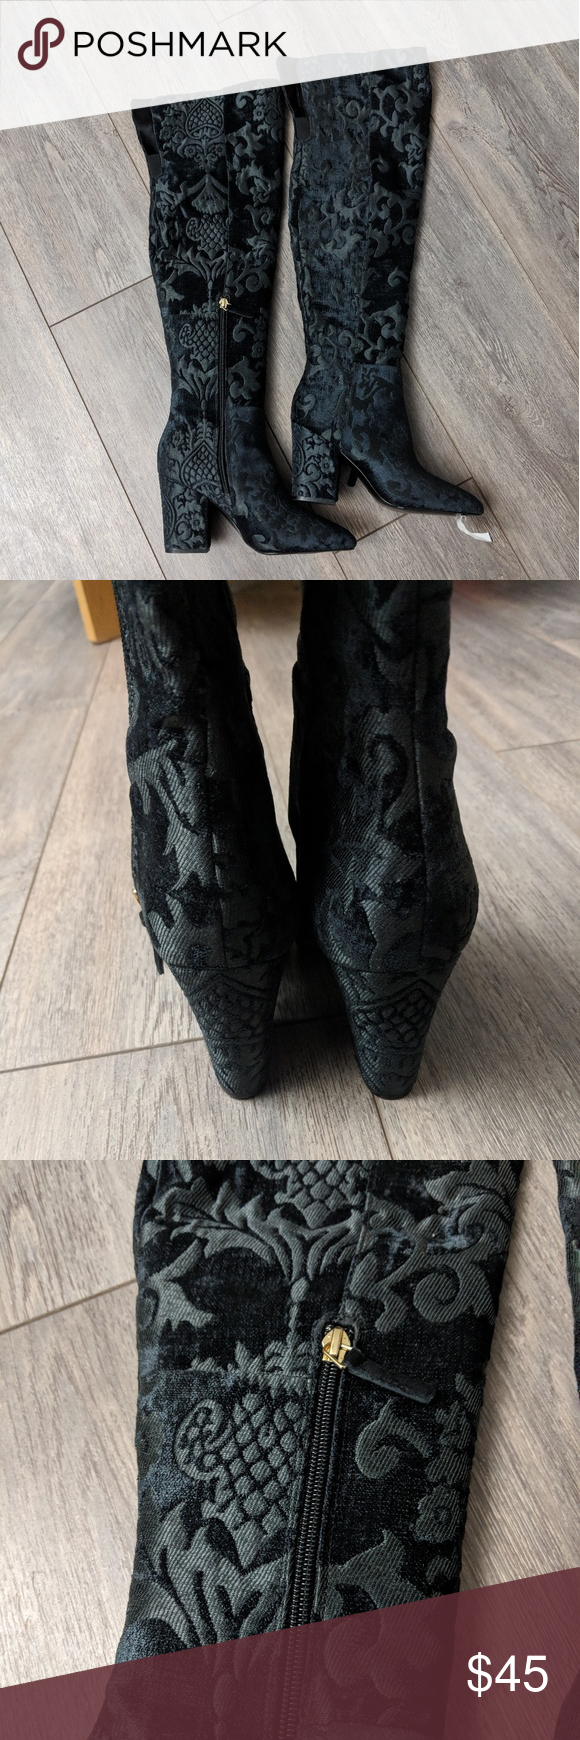 1dca43abc61 Nine West Siventa over the knee brocade heel boot Such a cute statement boot!  Really nice brocade. Pointed-toe over-the-knee boots Zipper closure at  inner ...